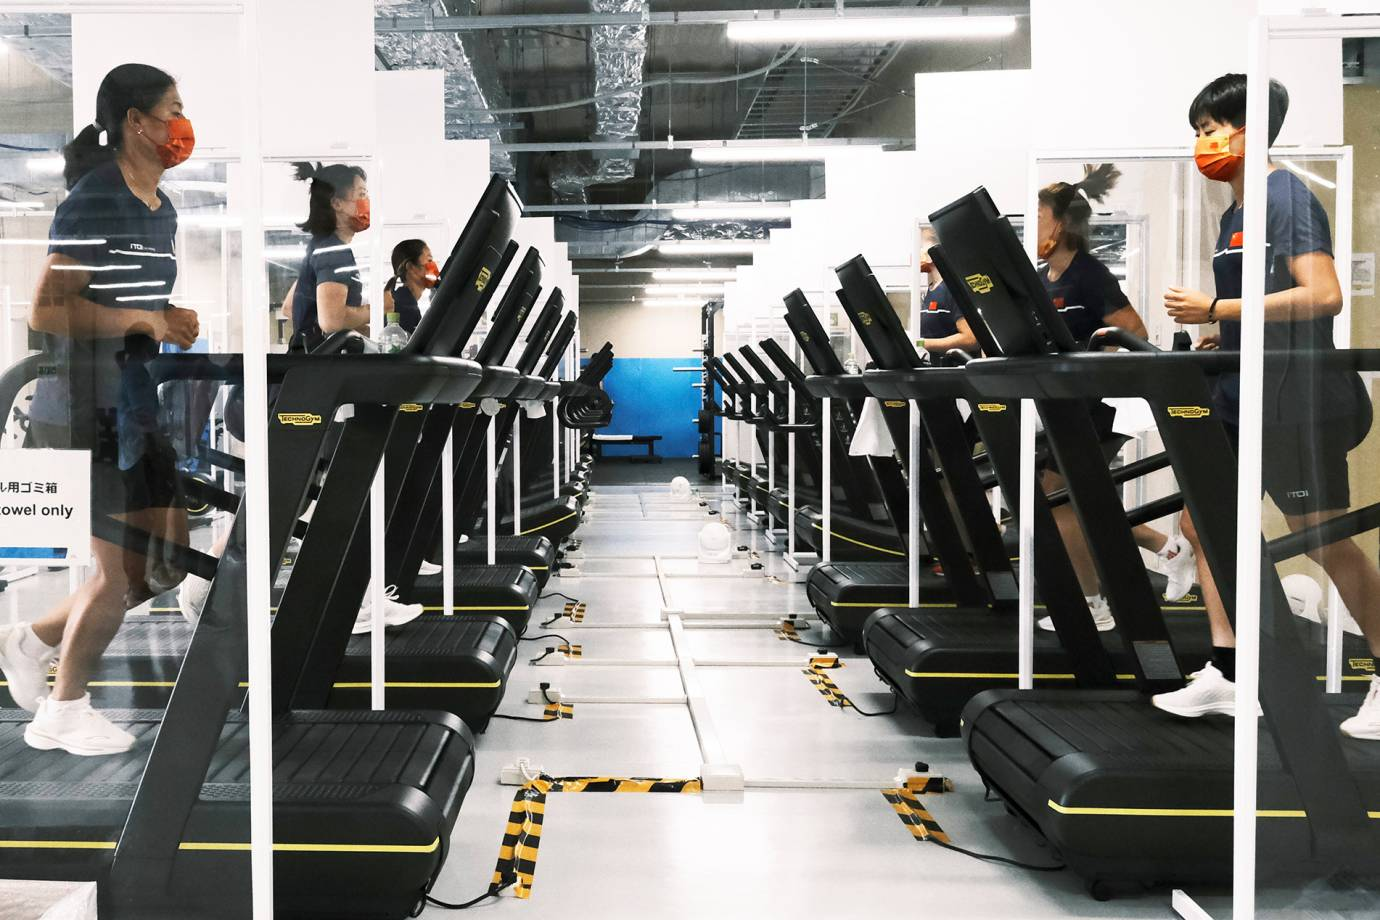 athletes on tradmills in the Olympic Village gym